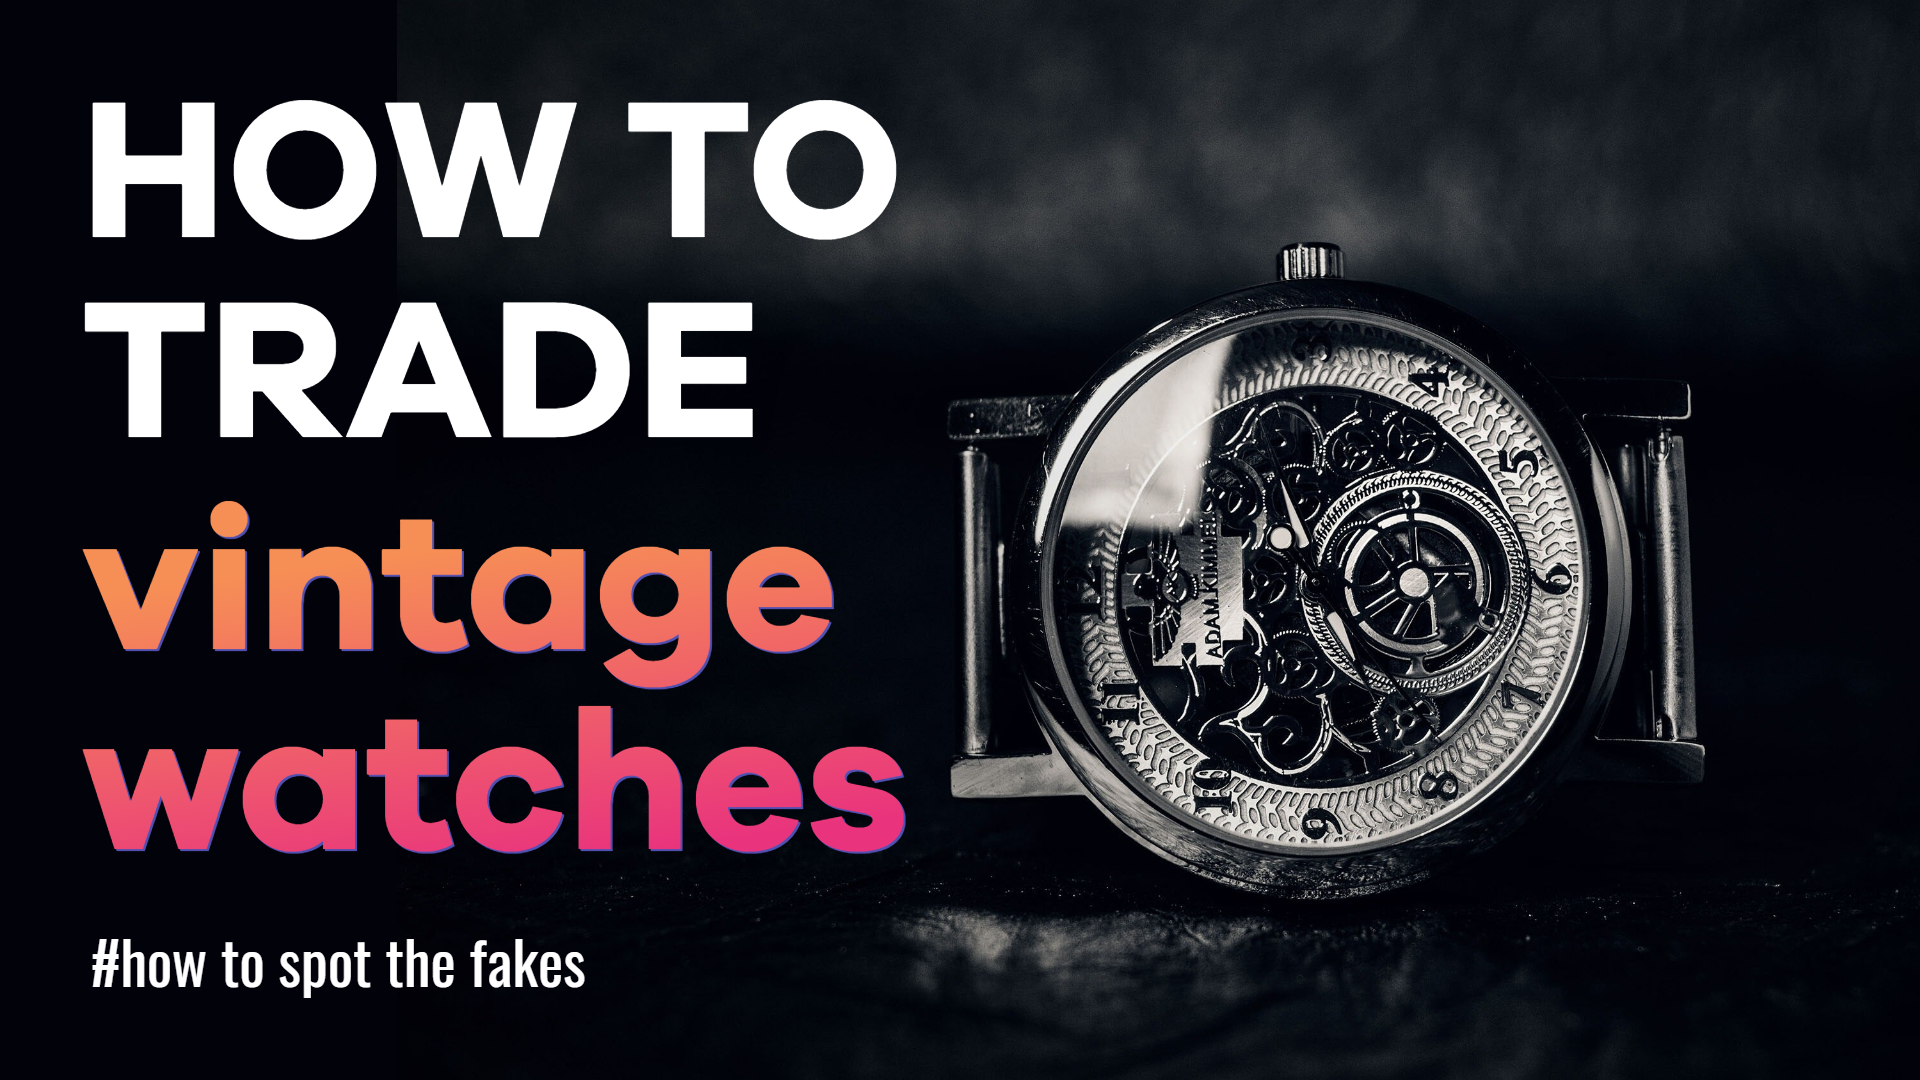 Watches Real Fakes Vintage Design  Template